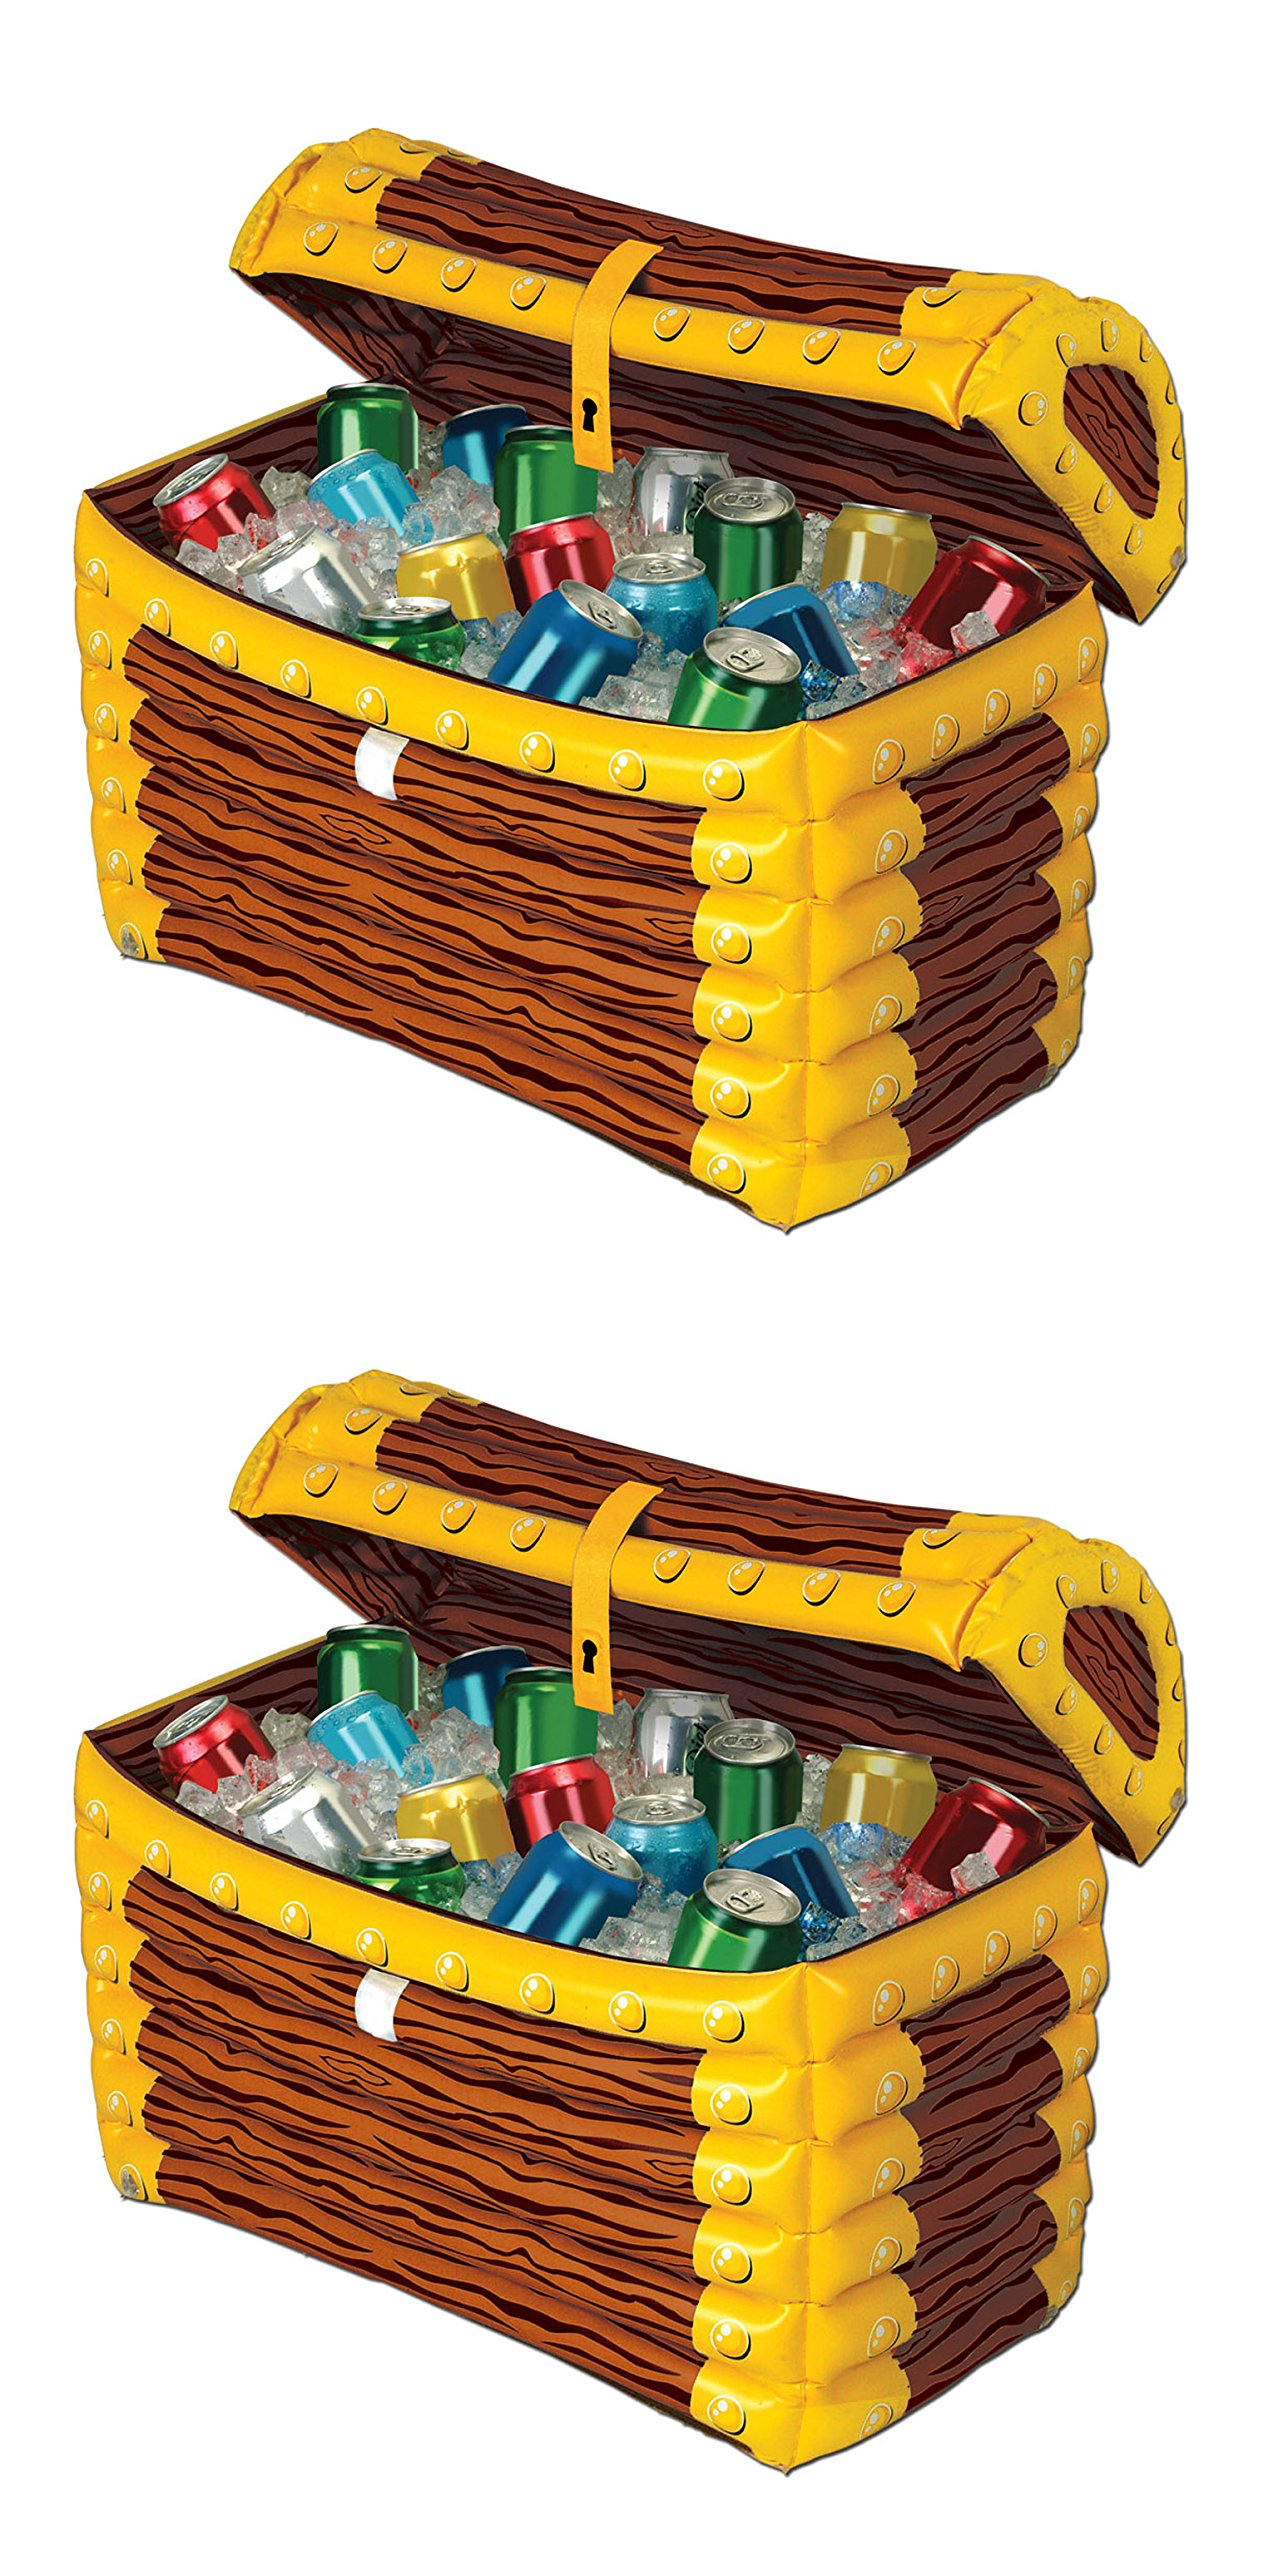 Beistle S50988AZ2 treasure chest cooler, Multicolored